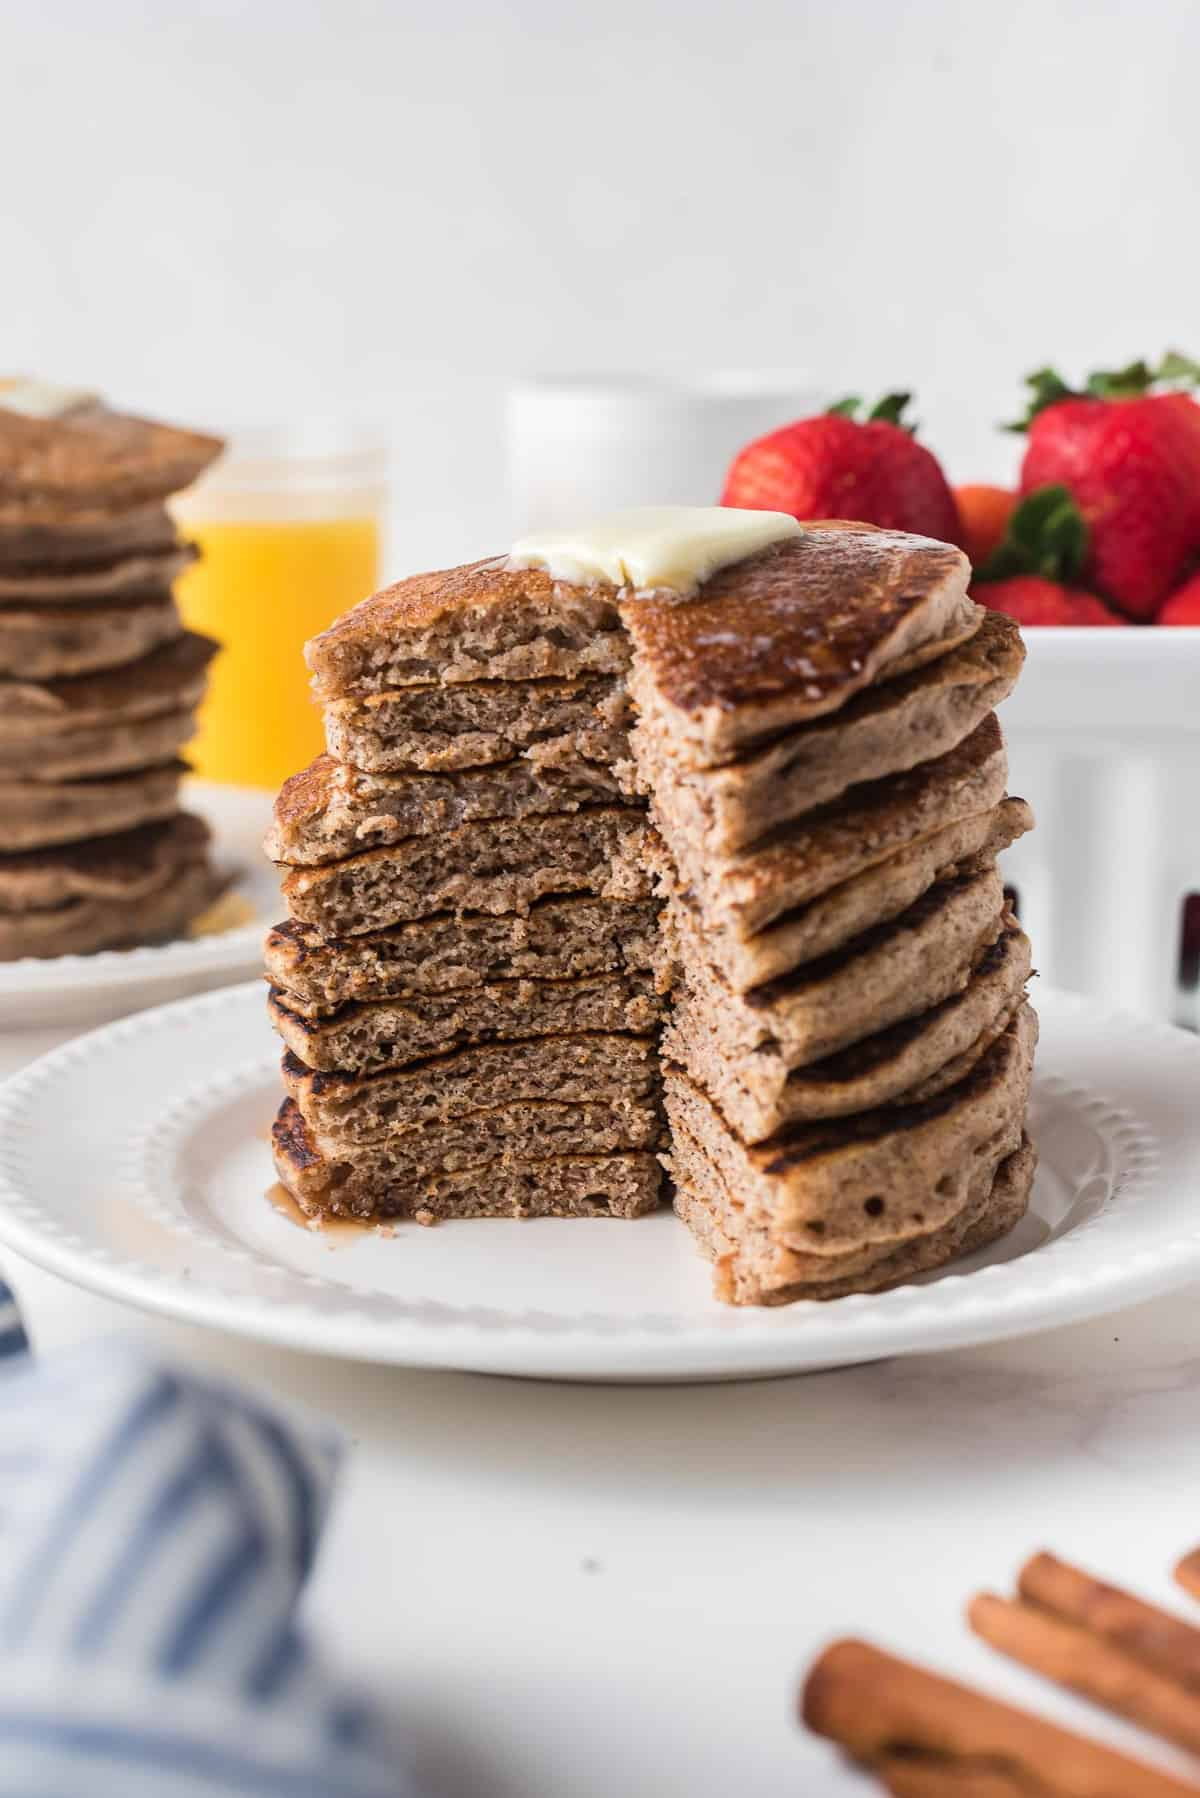 Pancakes with a wedge cut out to show texture.